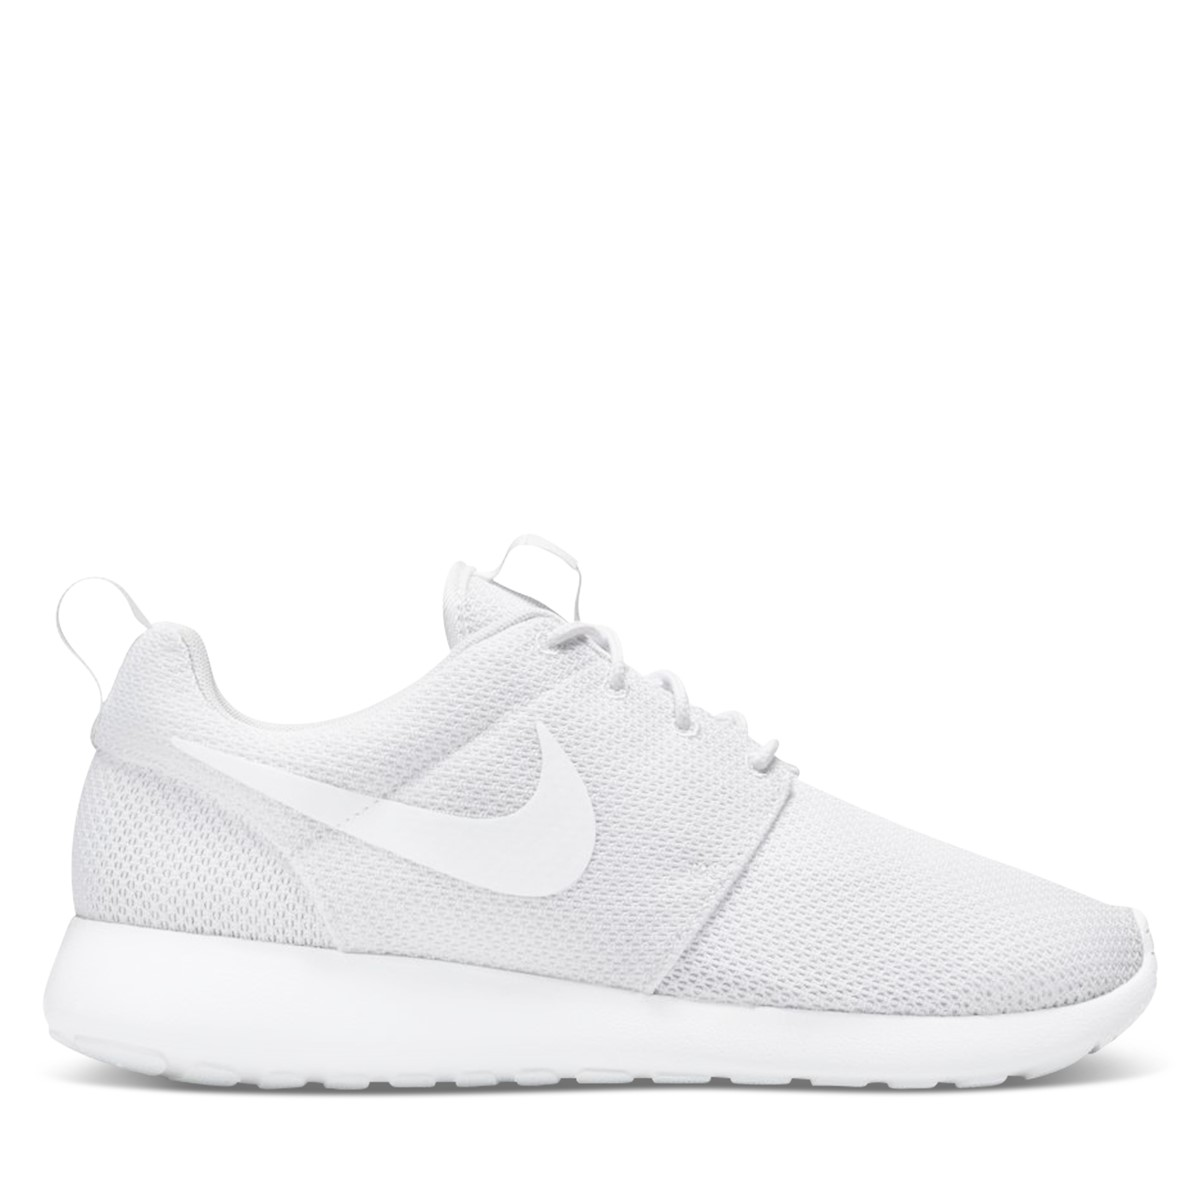 Men's Roshe One Sneaker in White